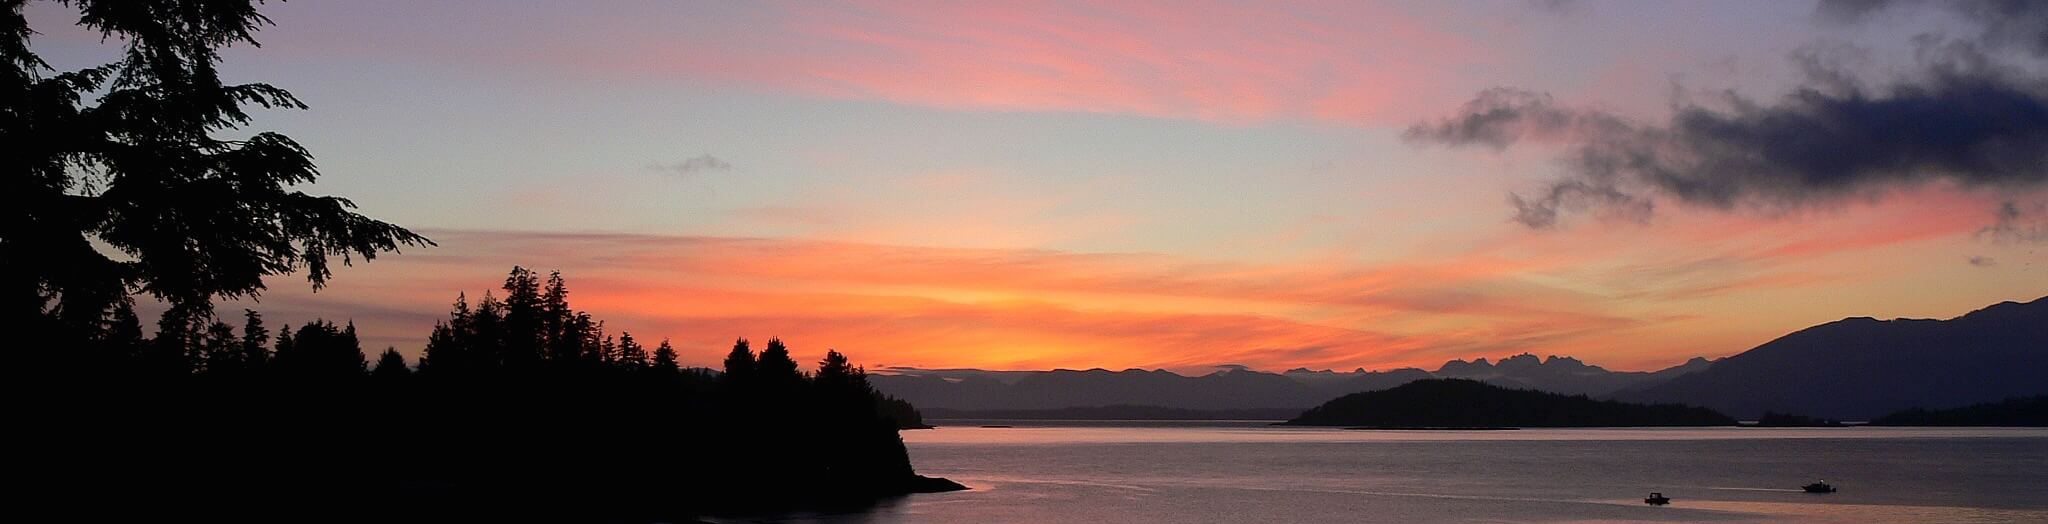 Beautiful Bamfield Sunset with pink sky over water